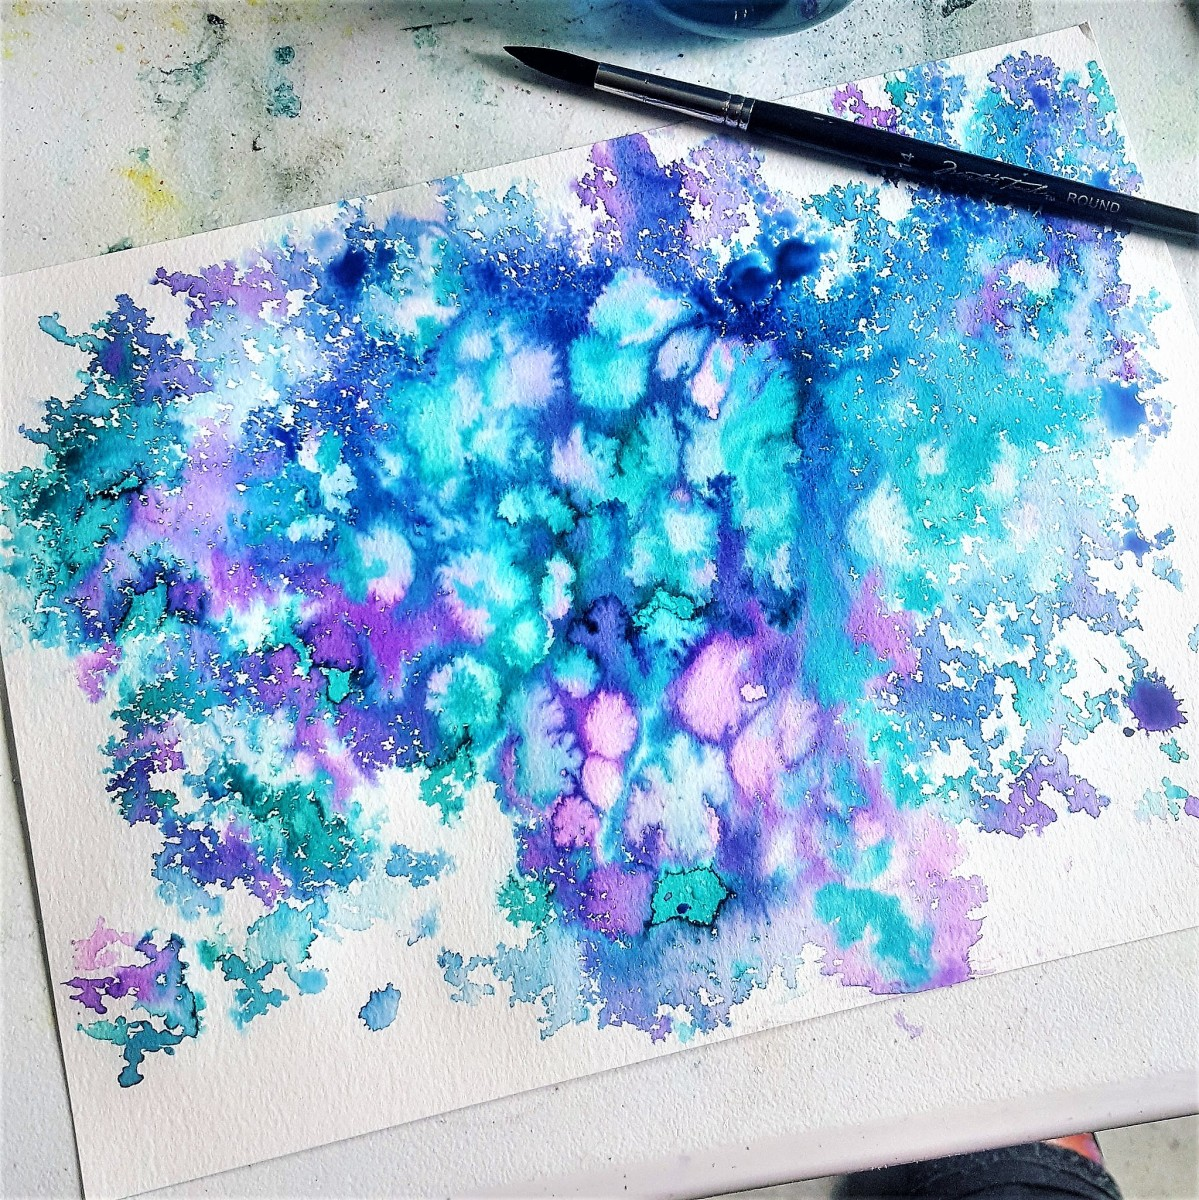 Watercolor abstract created with leftover paint!